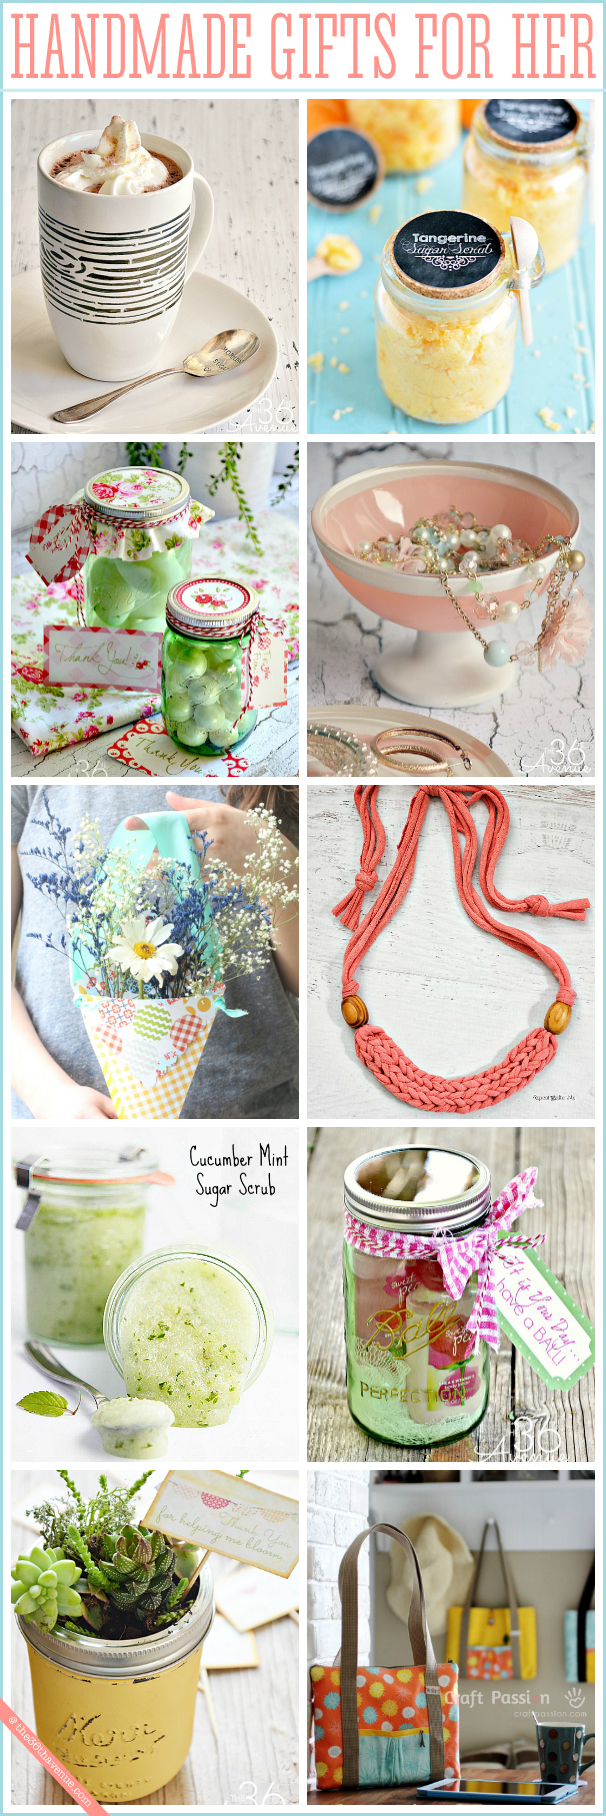 The 36th avenue handmade gifts for teachers the 36th Christmas ideas for your mom